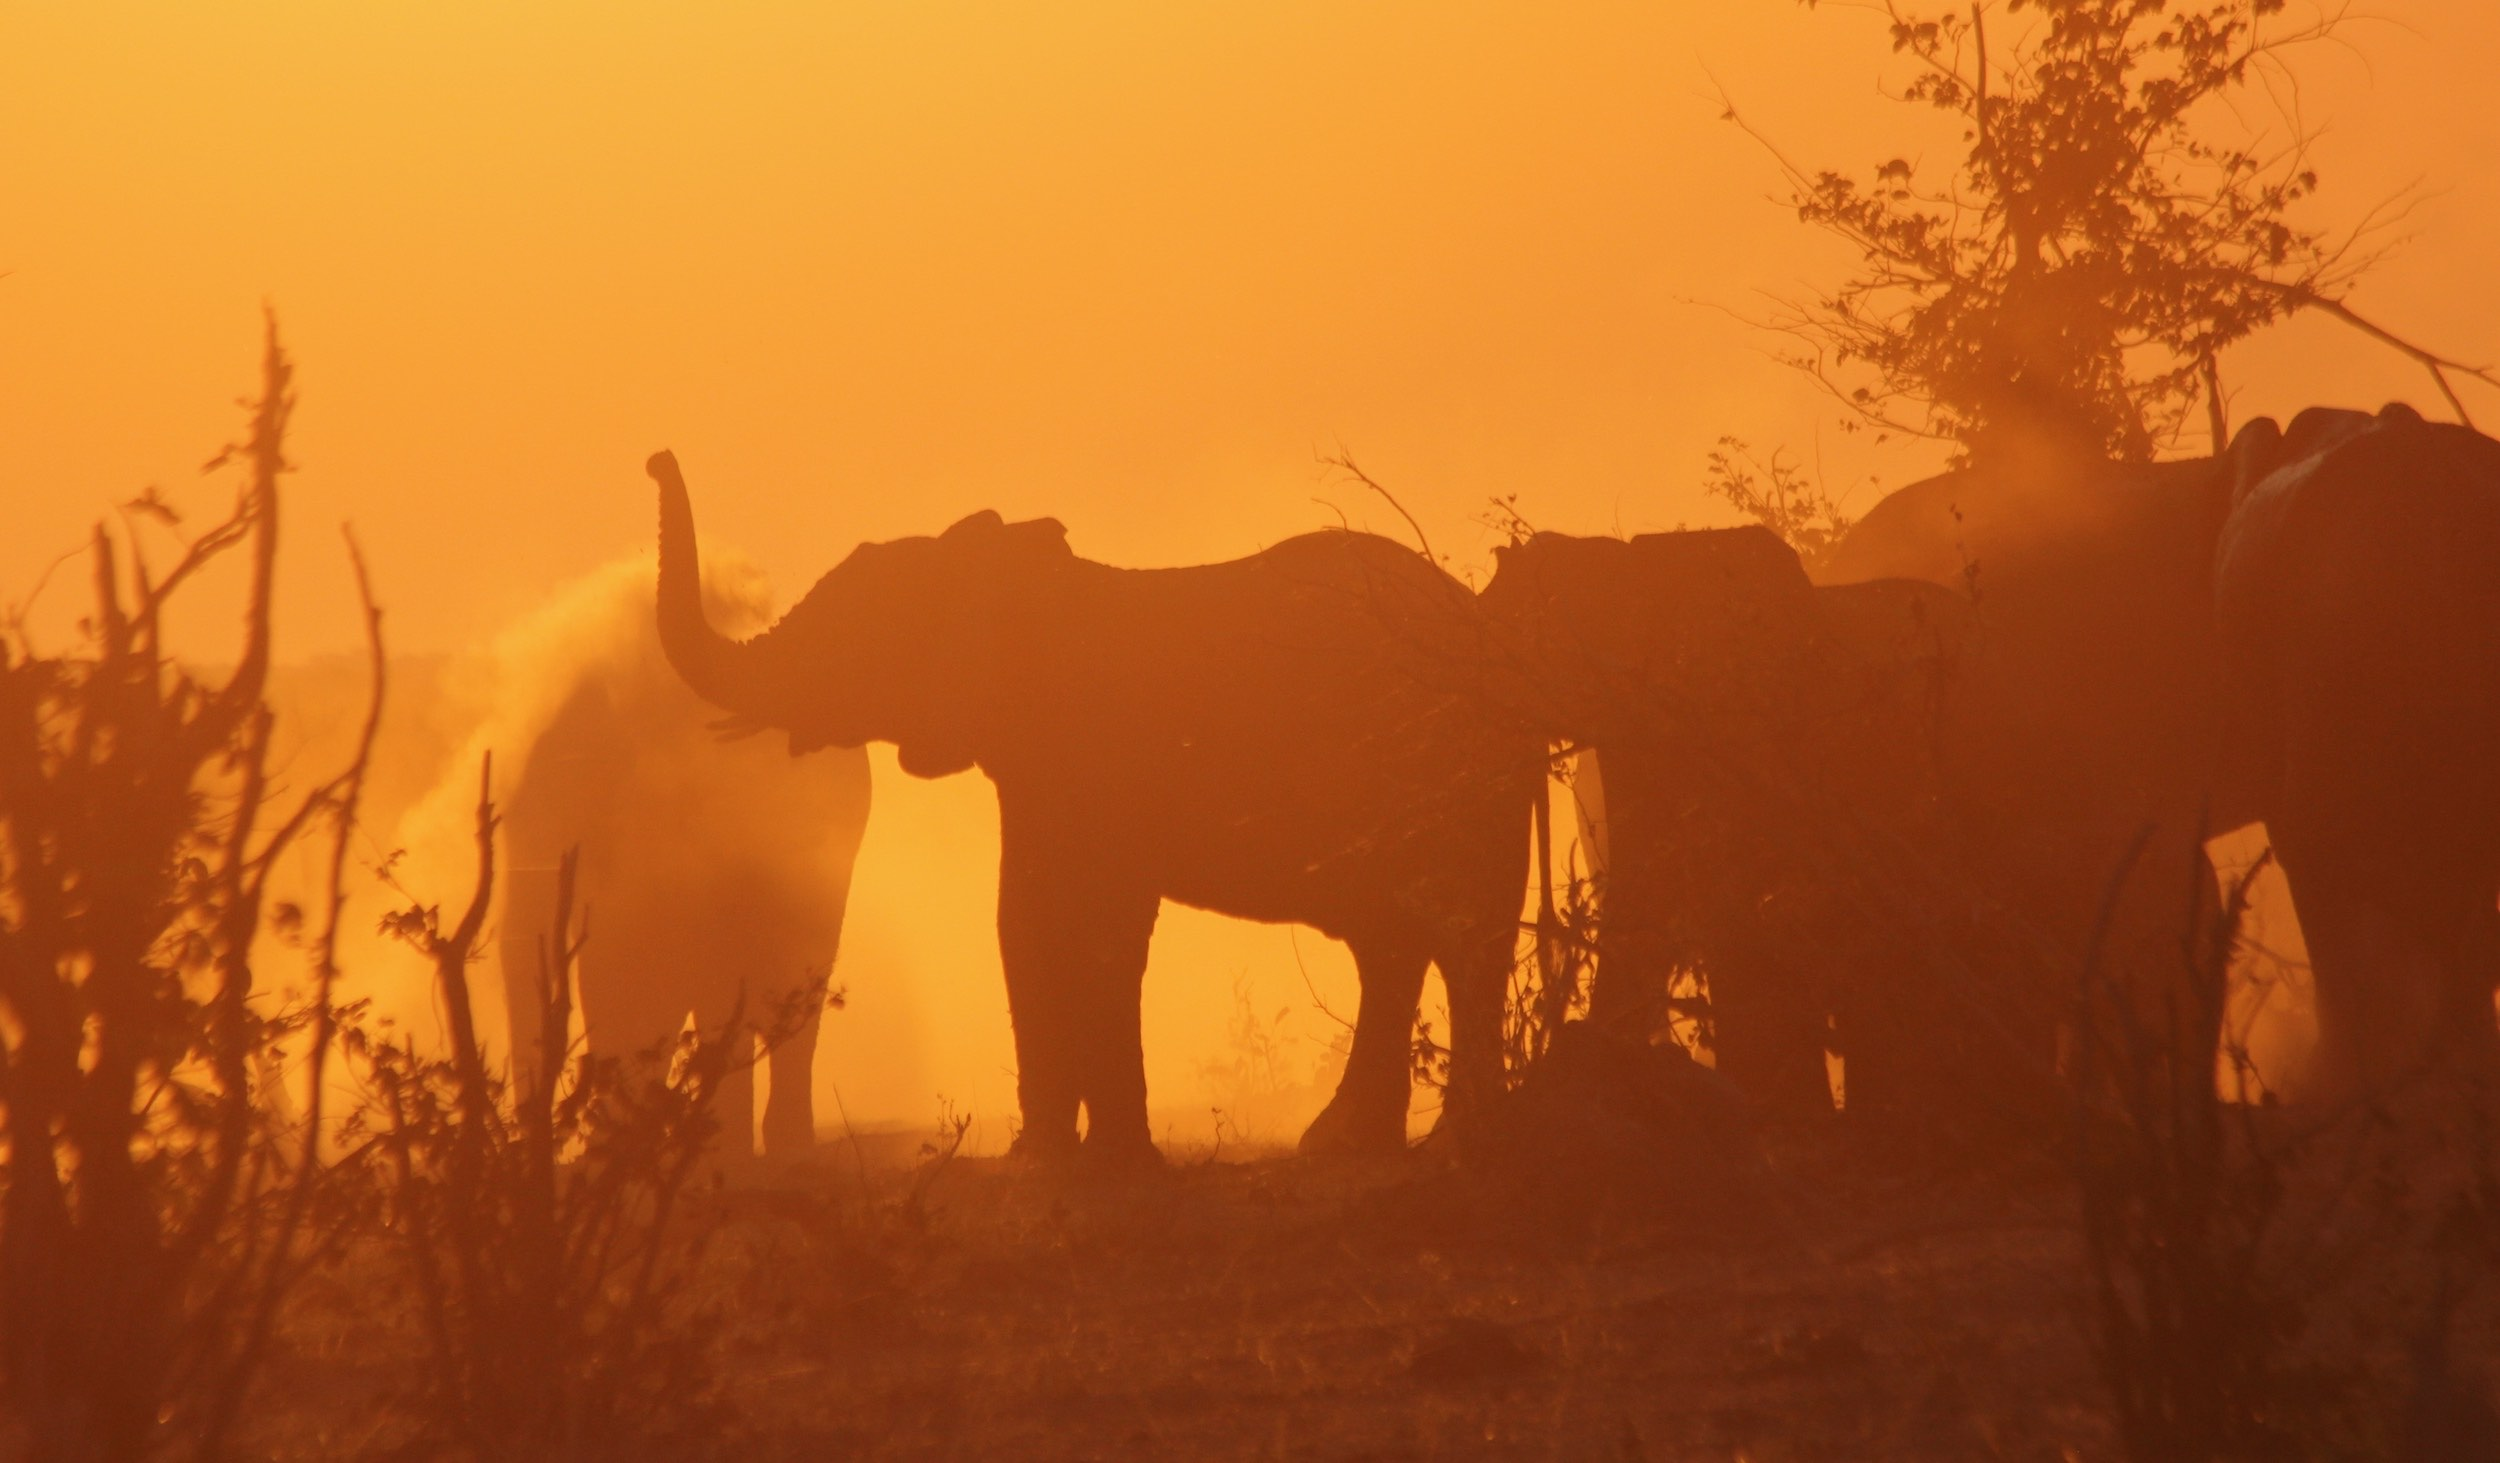 Elephants silhouetted against the setting sun.